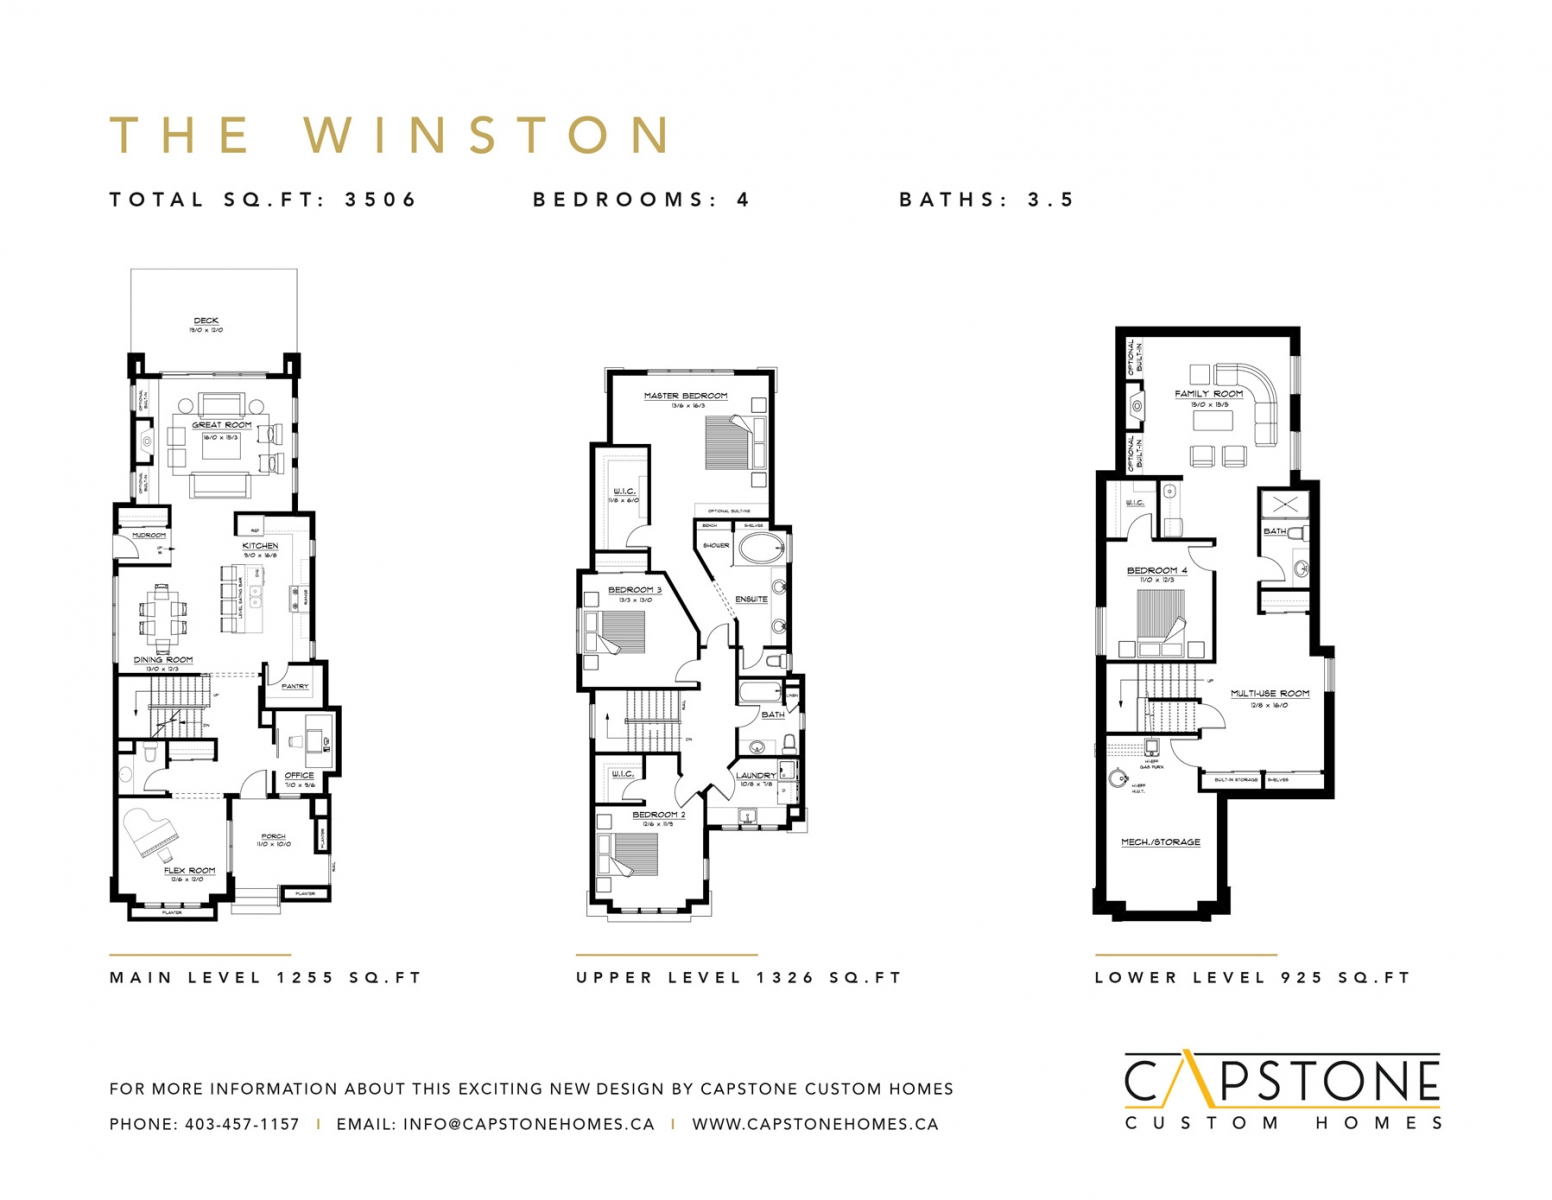 The Winston - Feature Sheet